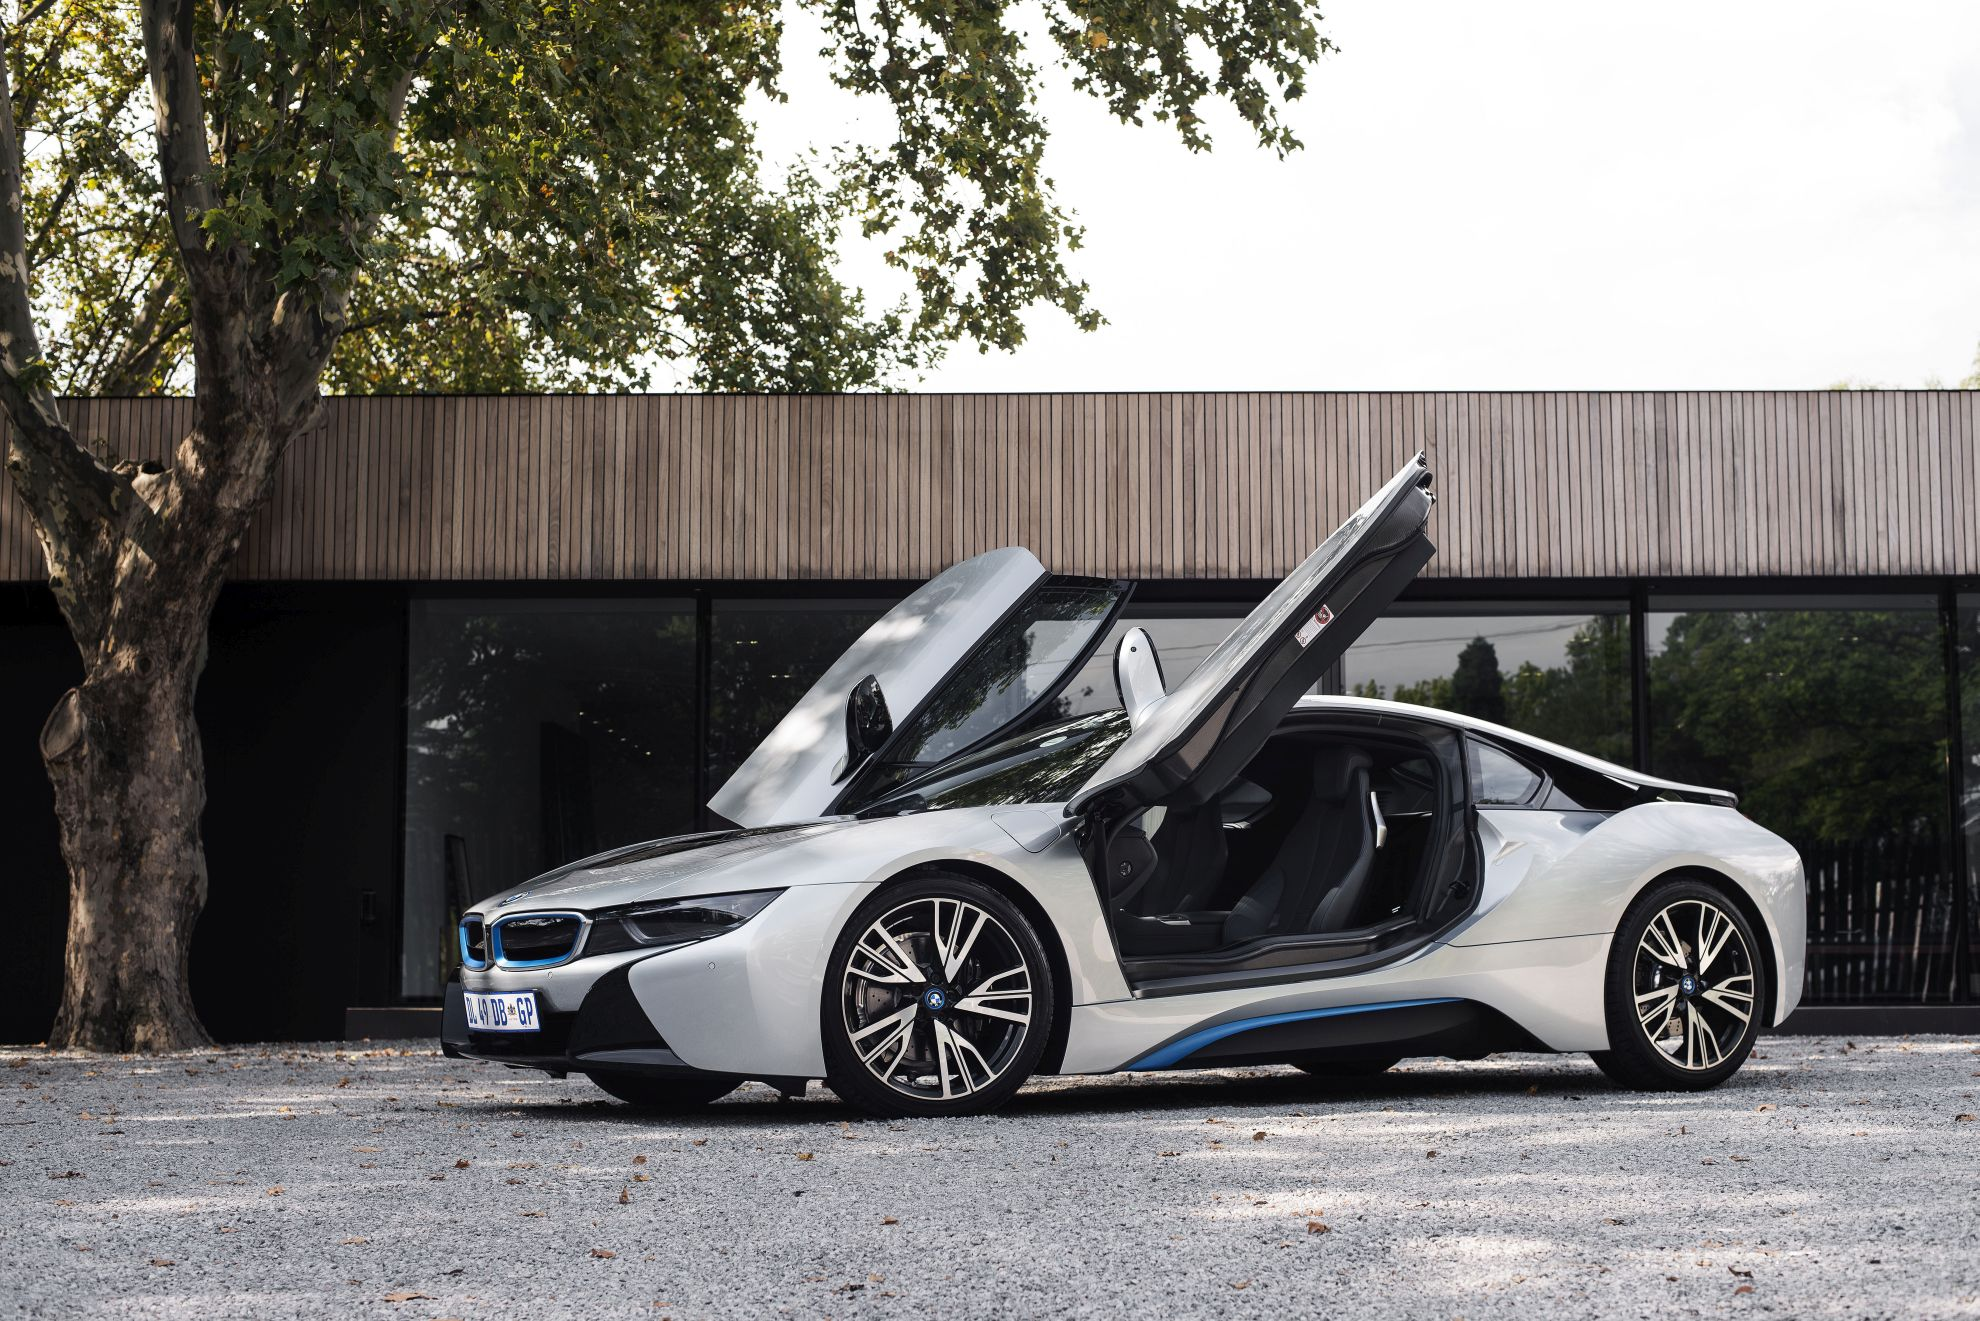 BMW-i8-is-World-Green-Car-at-New-York-International-Auto-Show